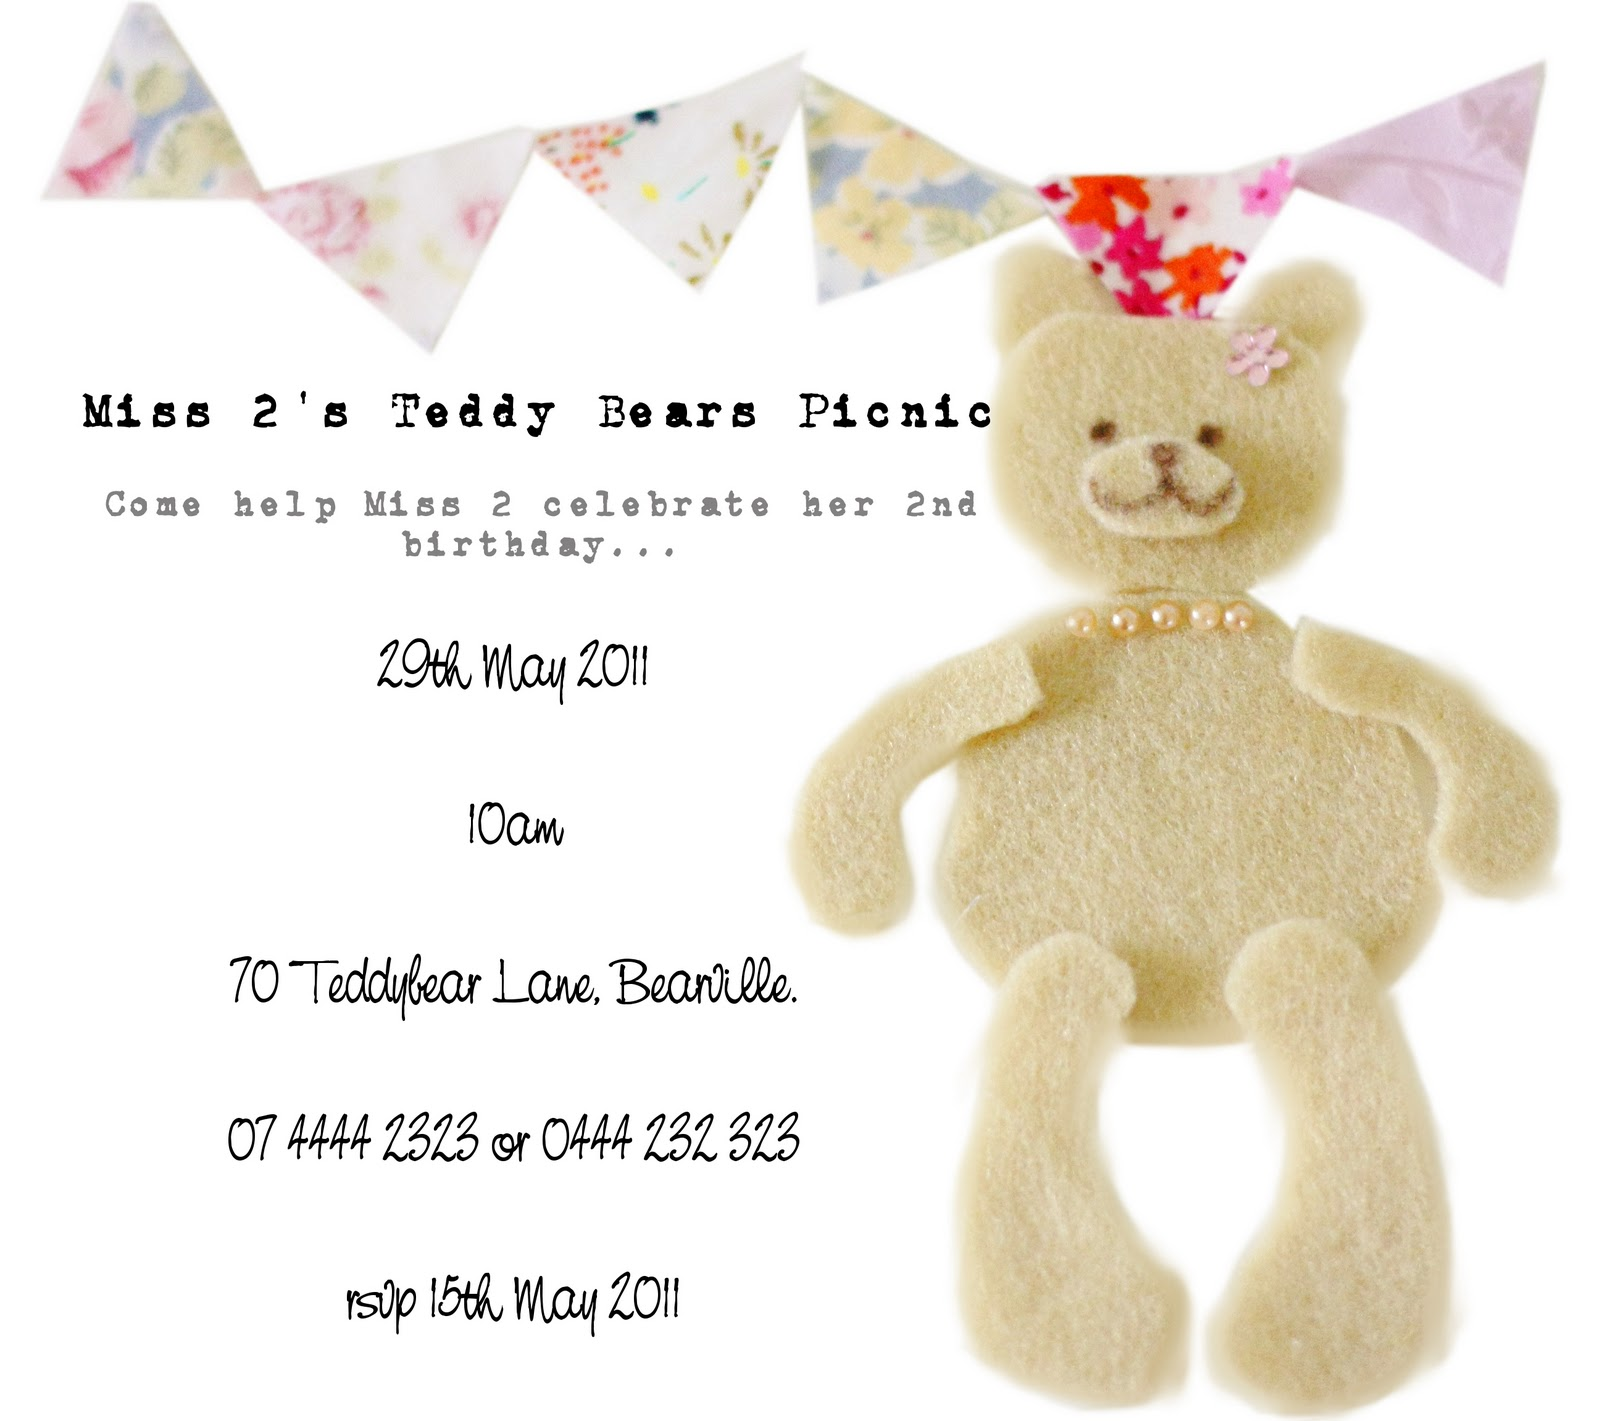 Teddy Bear Picnic Invitations for adorable invitation design